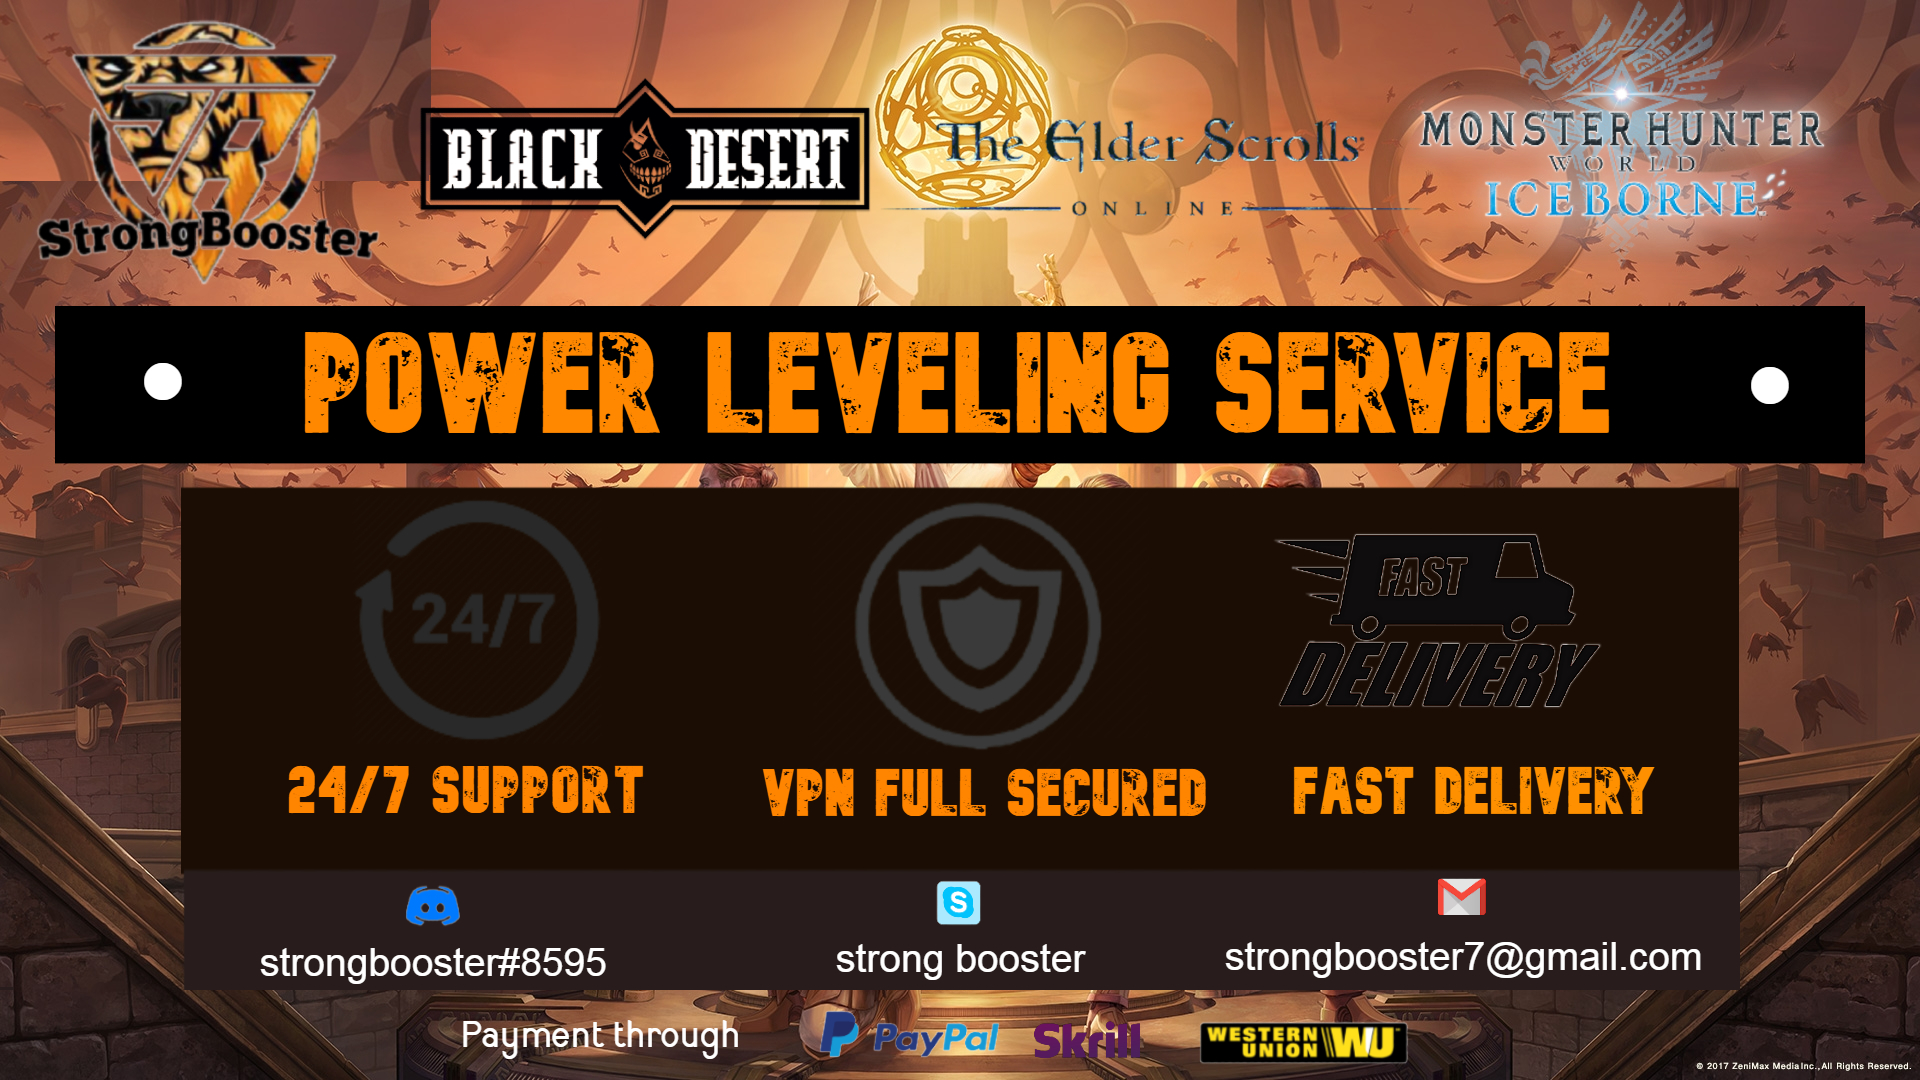 WoW Classic Power Leveling 1-60 Done by Hand with VPN full Secured 100% Safety Service